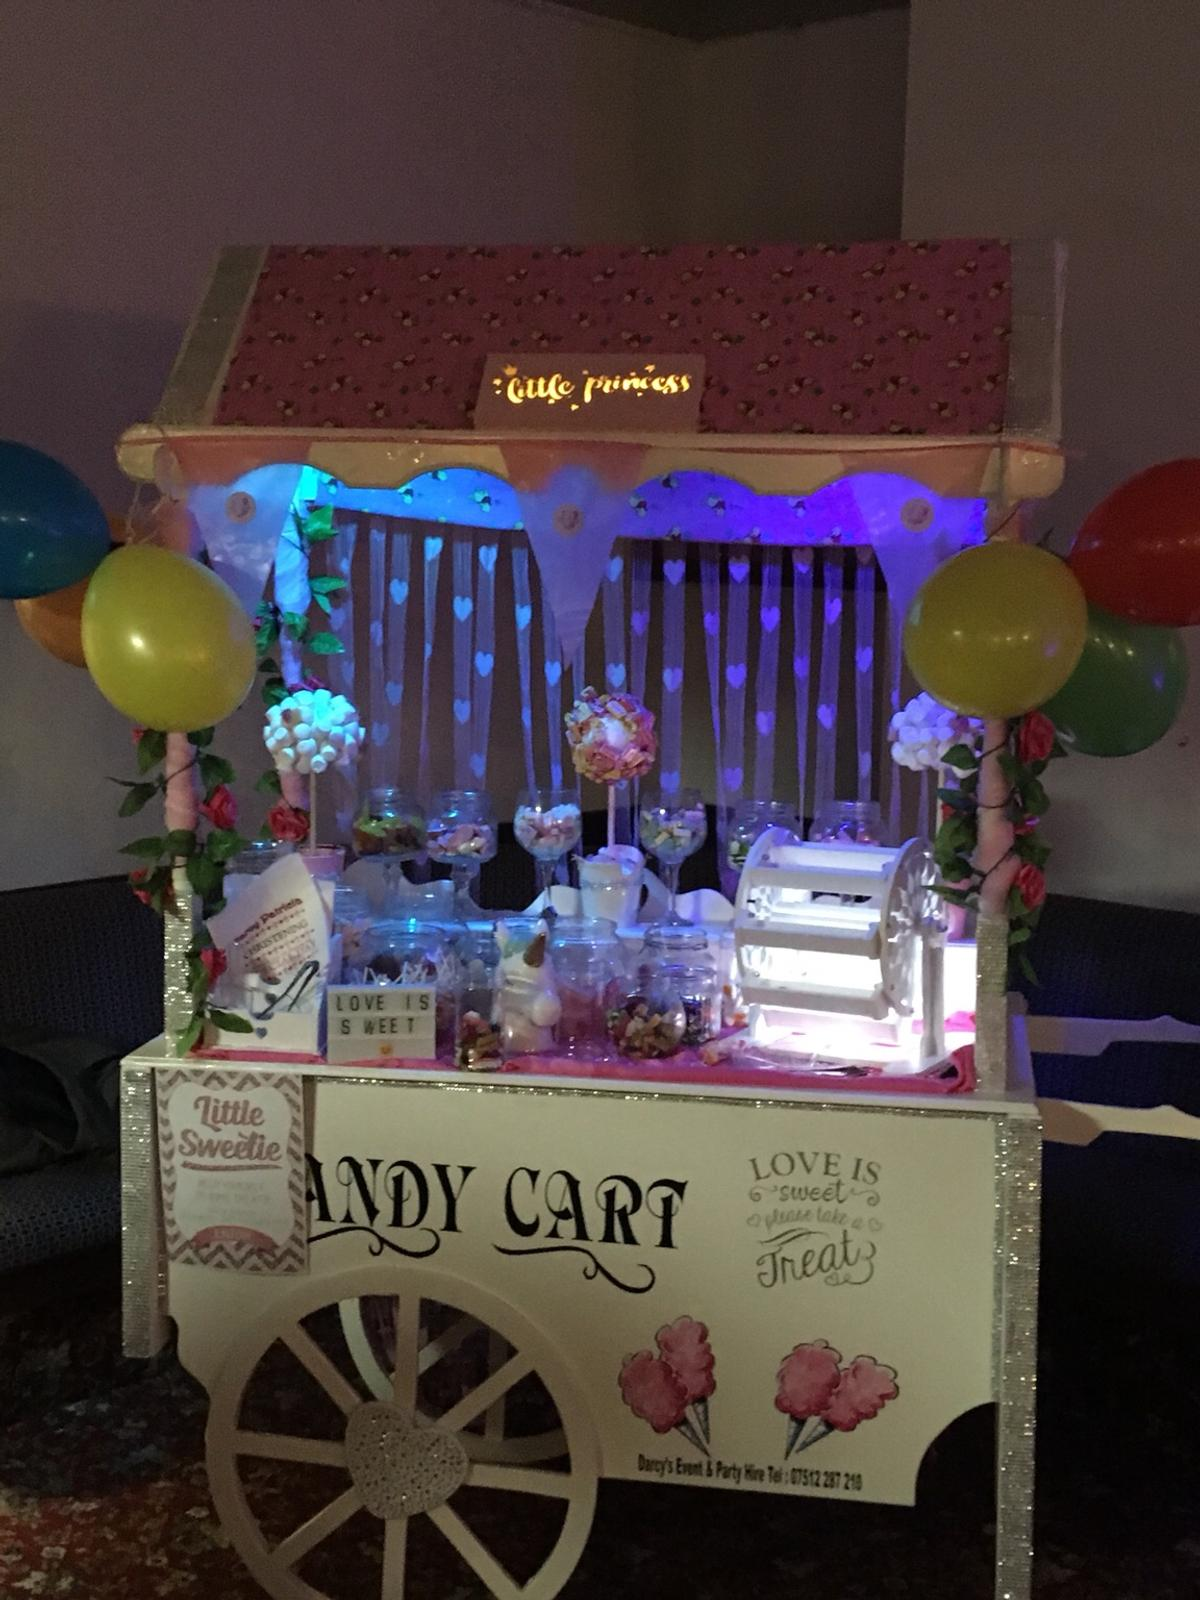 Candy cart hire carlisle Area  Visit Facebook @darcyseventhire Darcyseventhire.co.uk